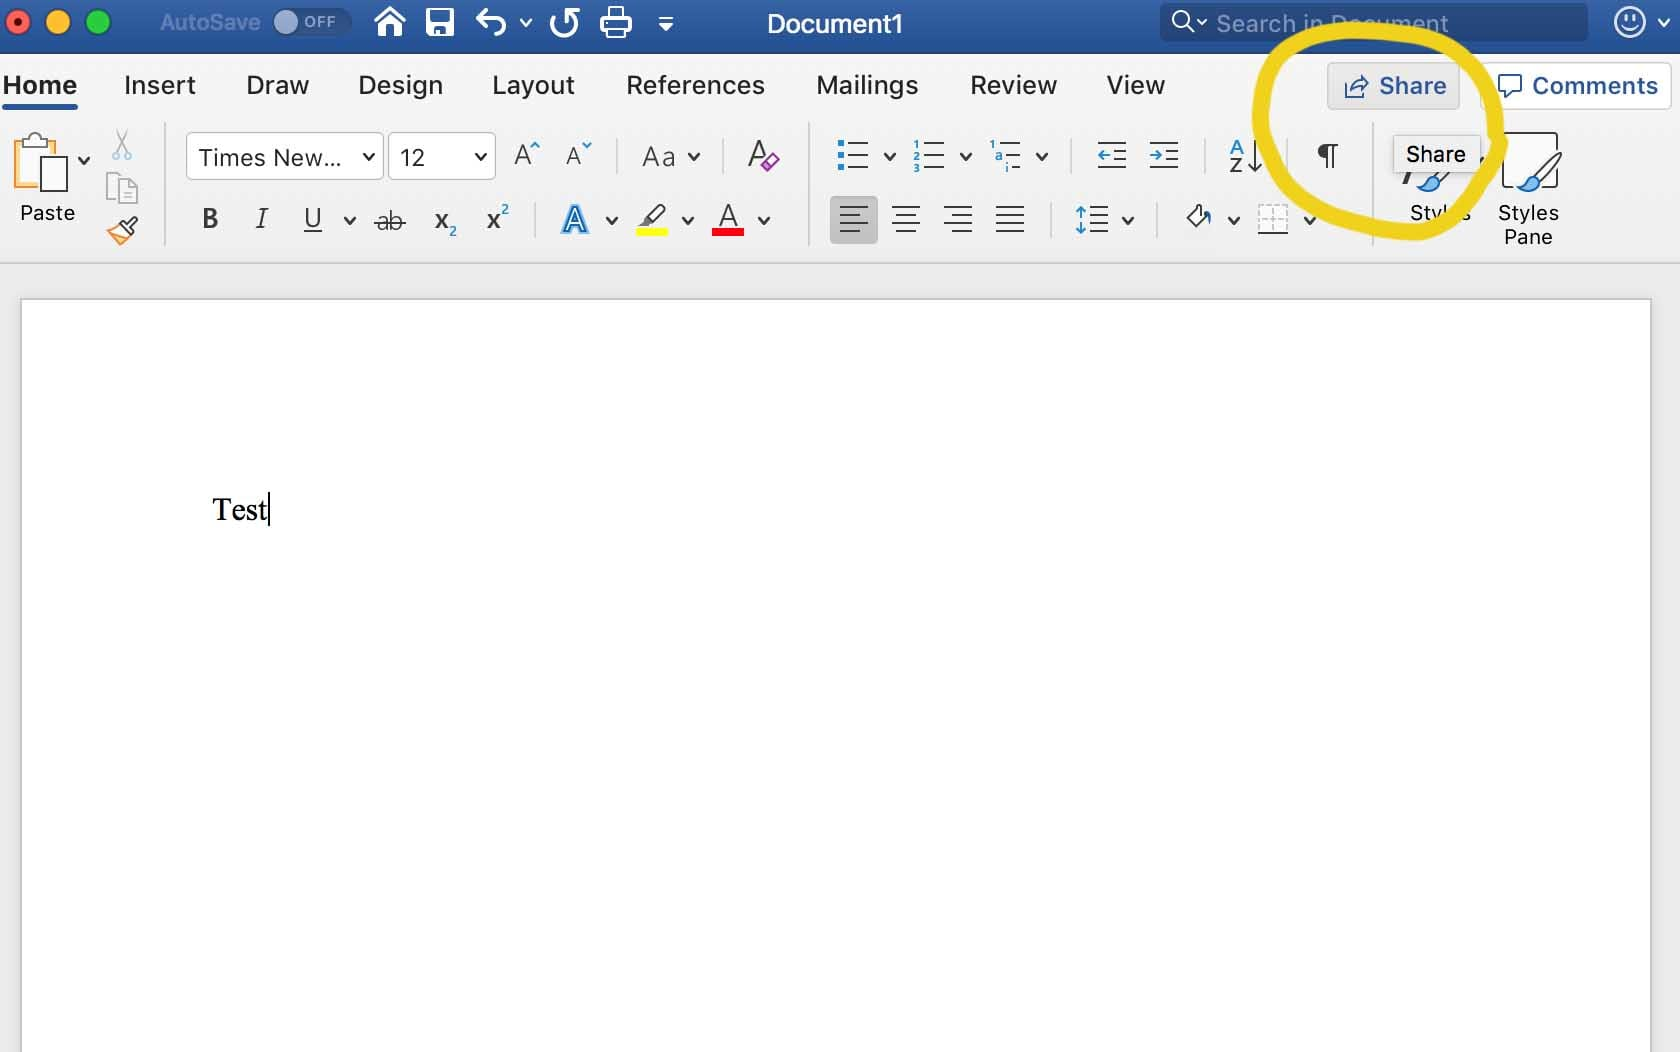 Invite others to work on your document, by clicking Share in the top-right corner of your doc.